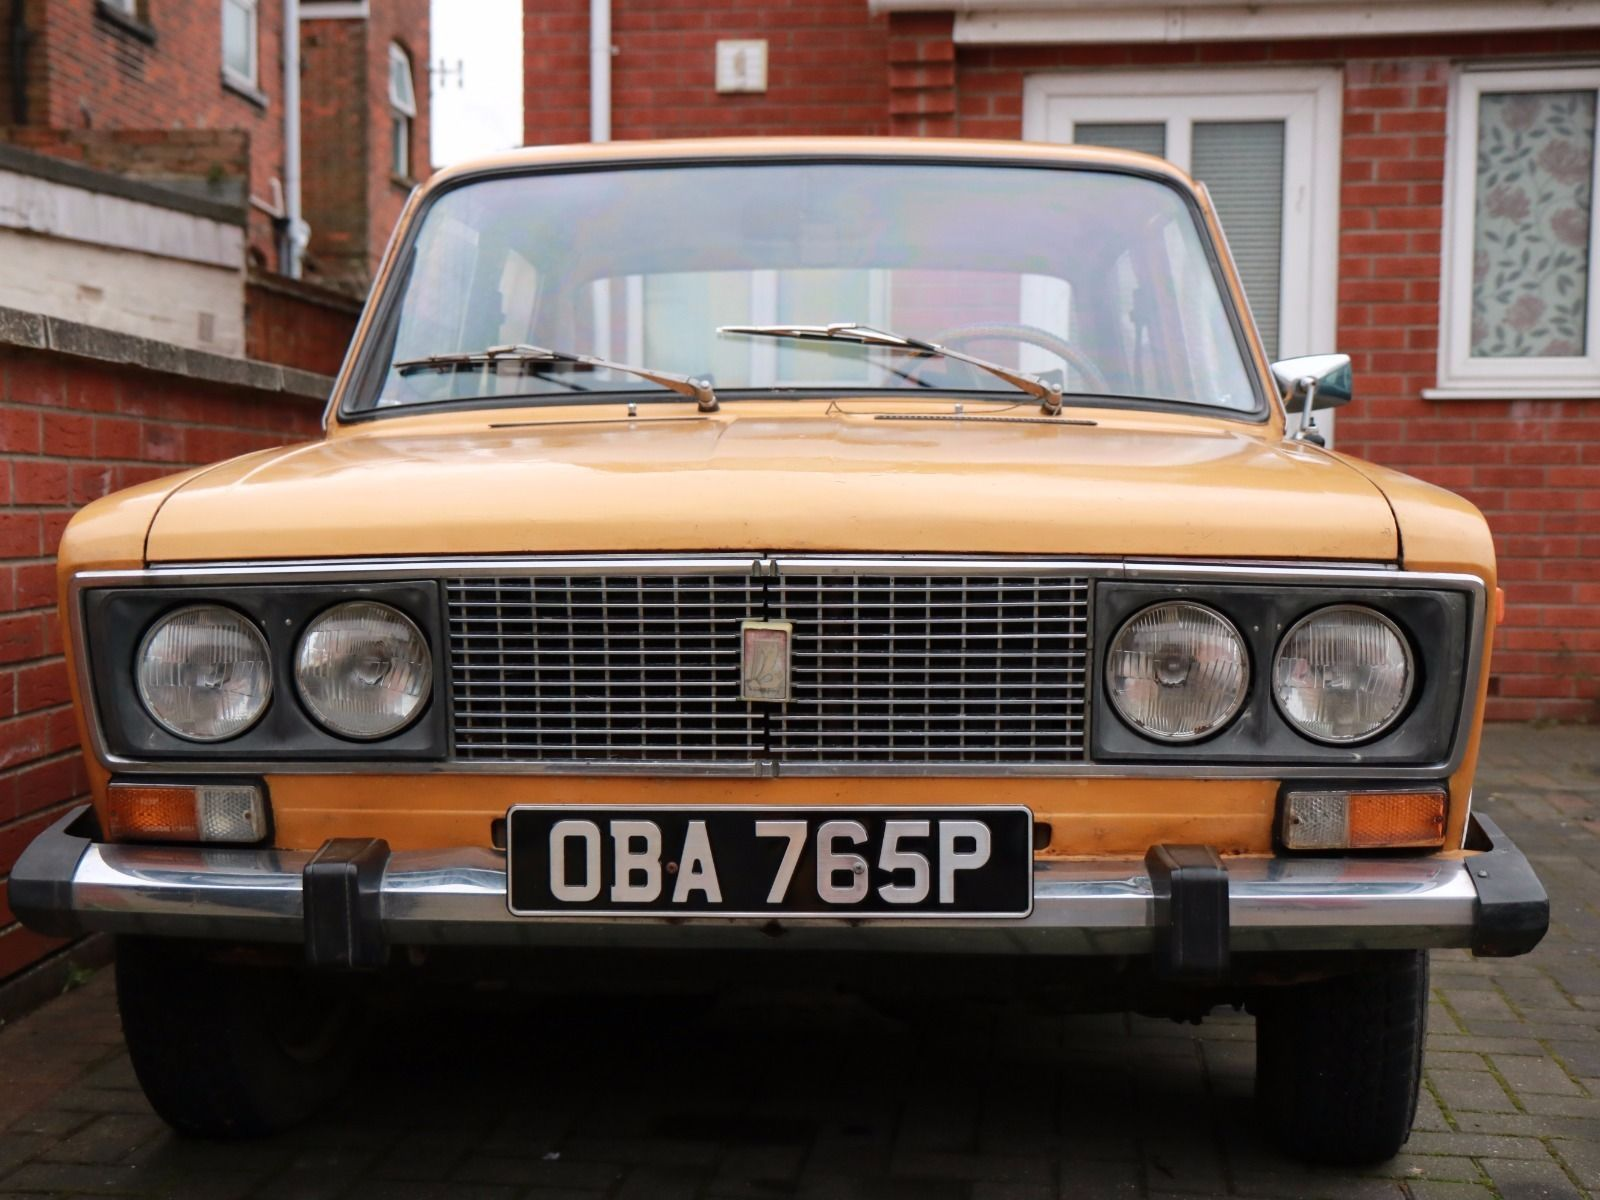 Lada 1600 / Vaz 2106 Classic car | Cars and Vehicle